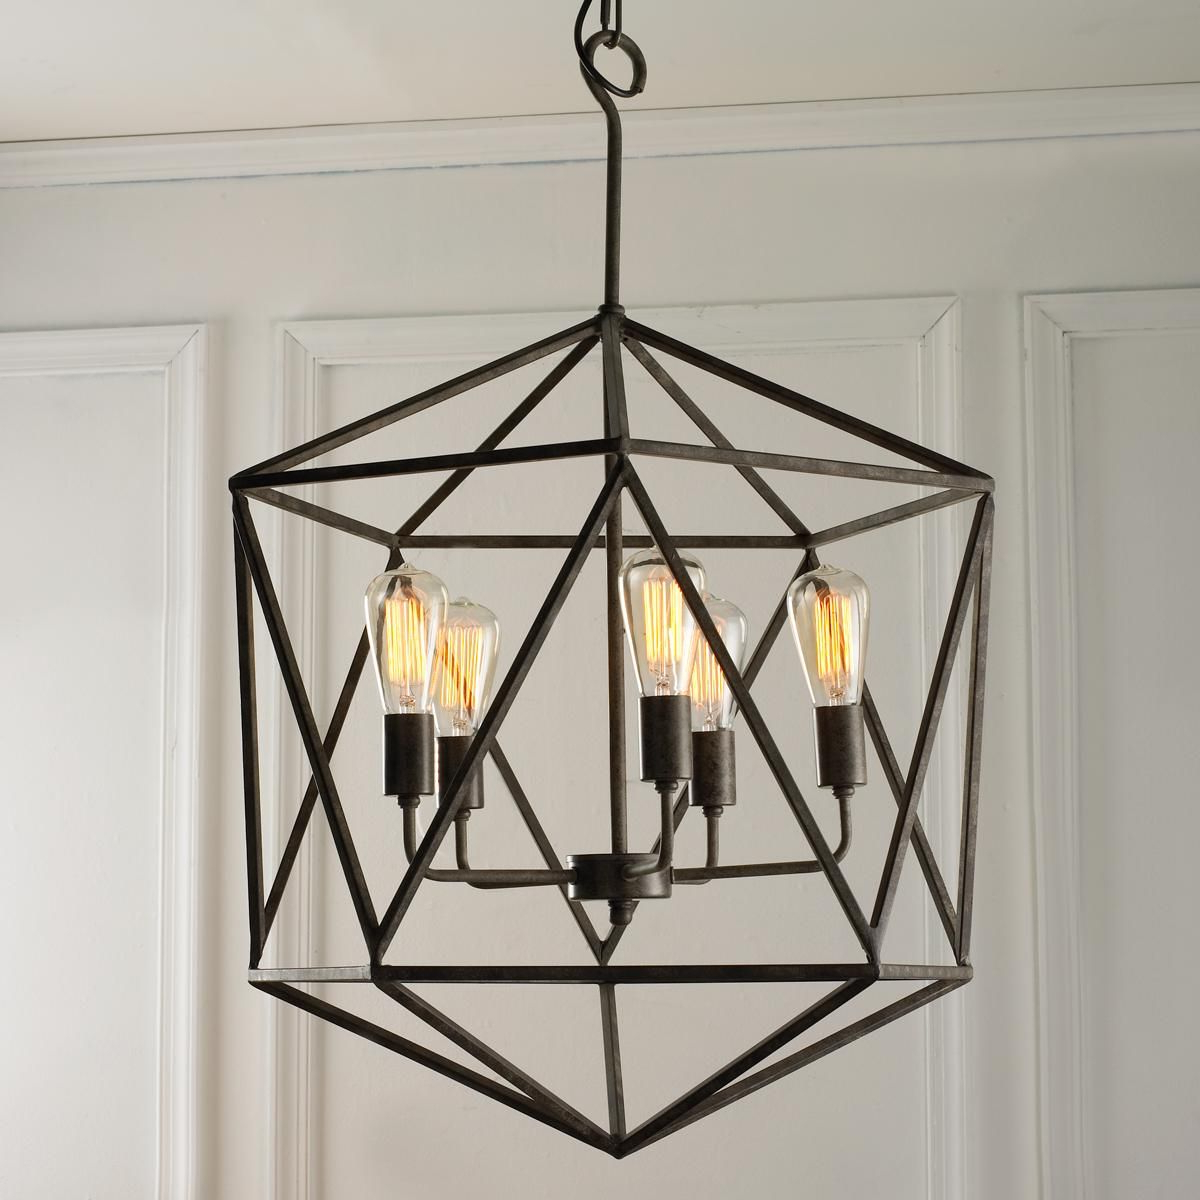 Craftsman Style Home Throughout Nisbet 6 Light Lantern Geometric Pendants (View 16 of 25)